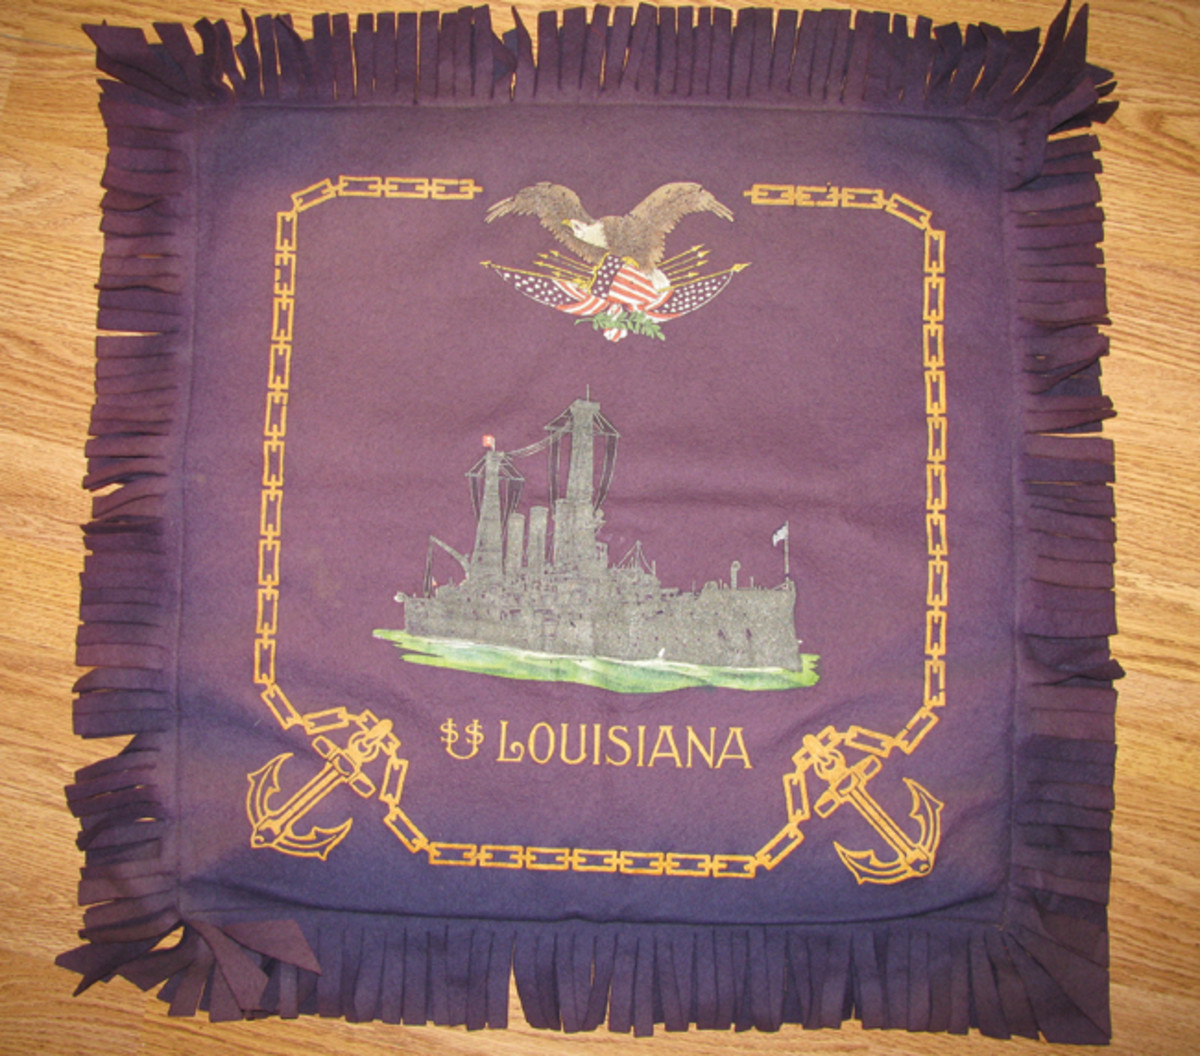 A favorite souvenir among US Navy personnel during WWI was a silk pillow case imprinted with a sailor's particular ship, in this example, the USS Louisiana.